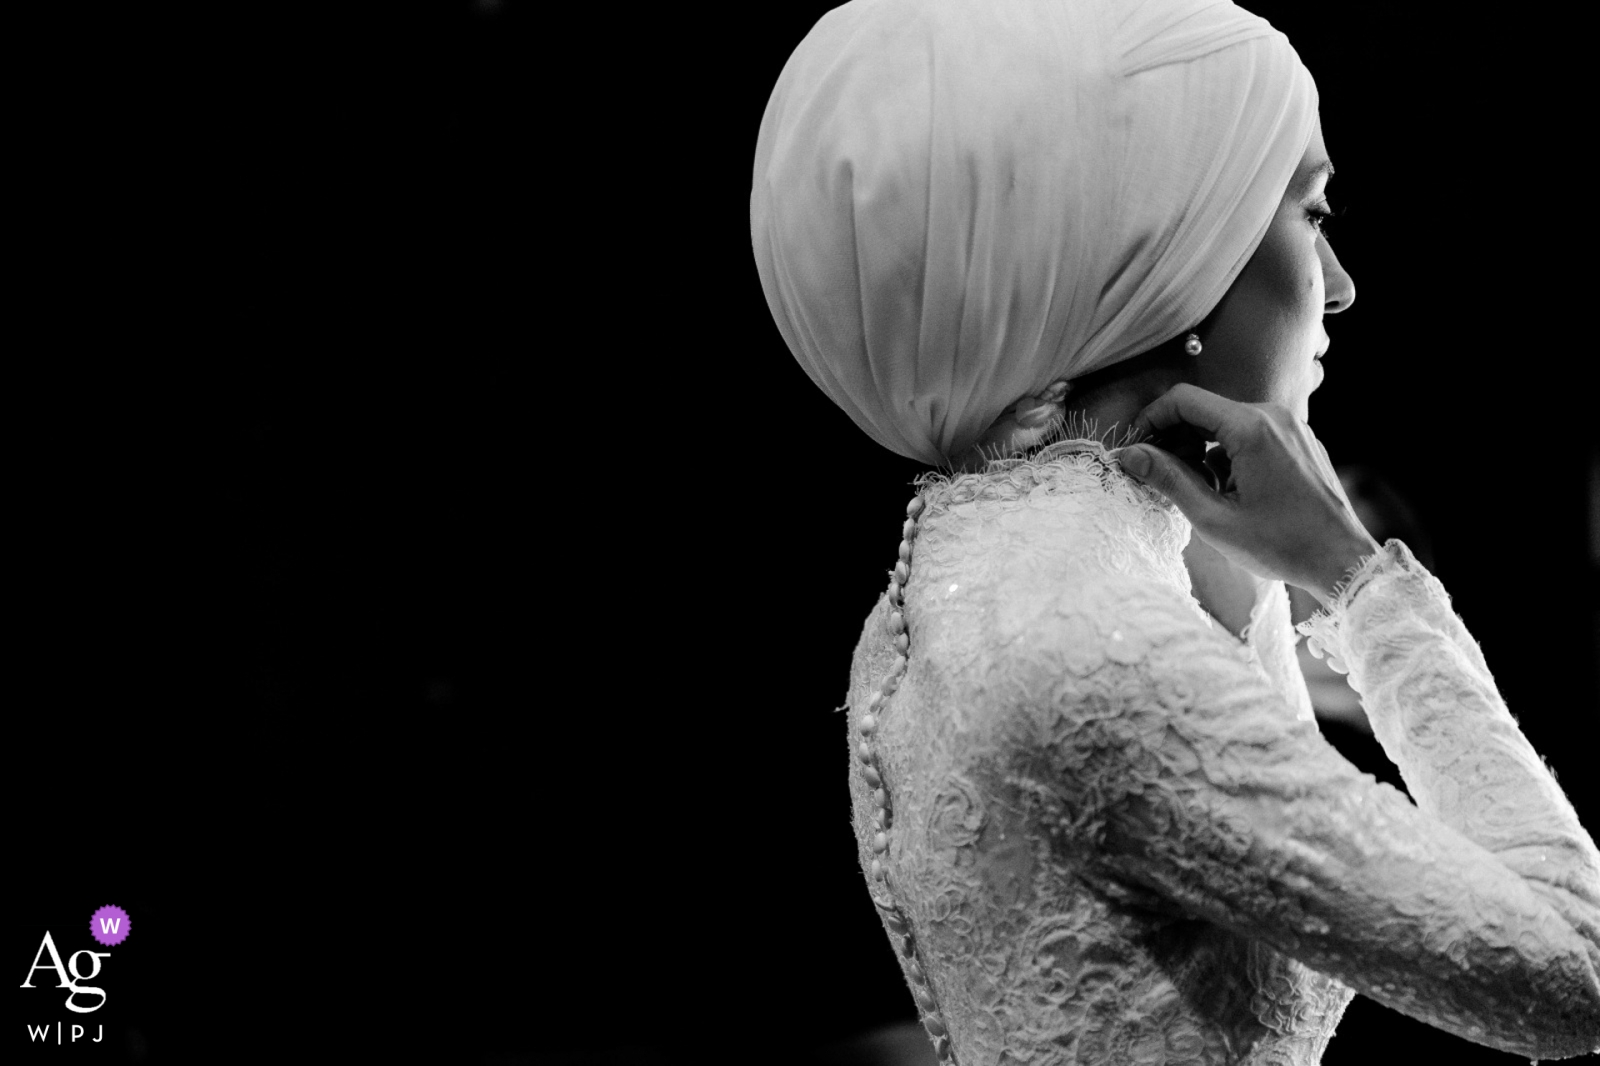 Turkey wedding photographer caught this black and white image of the bride putting finishing touches on herself to get ready for the ceremony